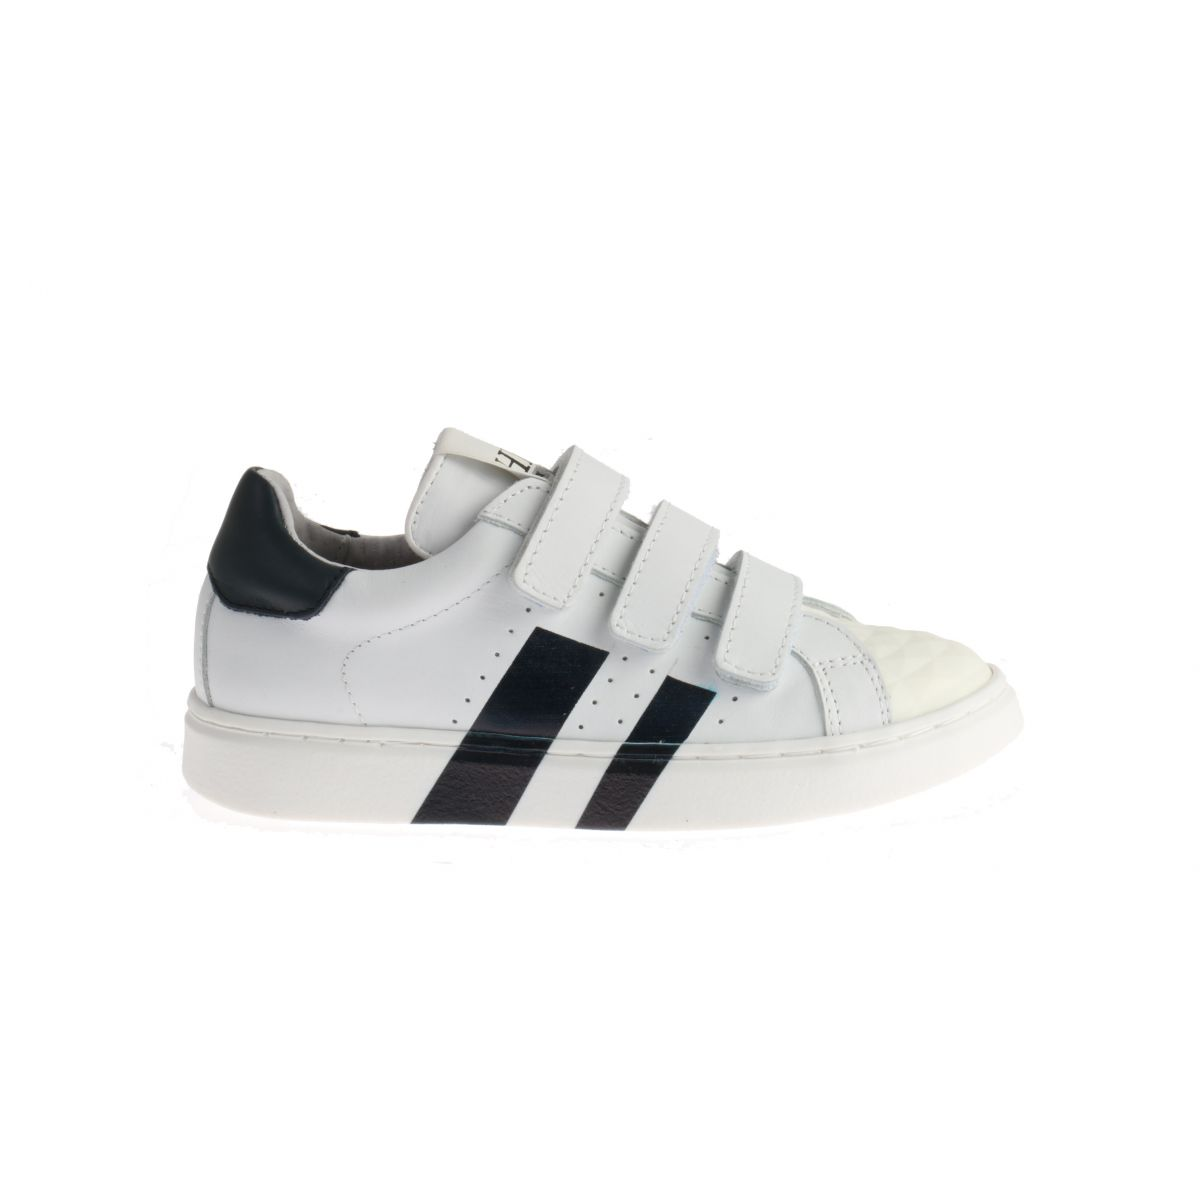 HIP H1794 Sneakers Blauw Striped